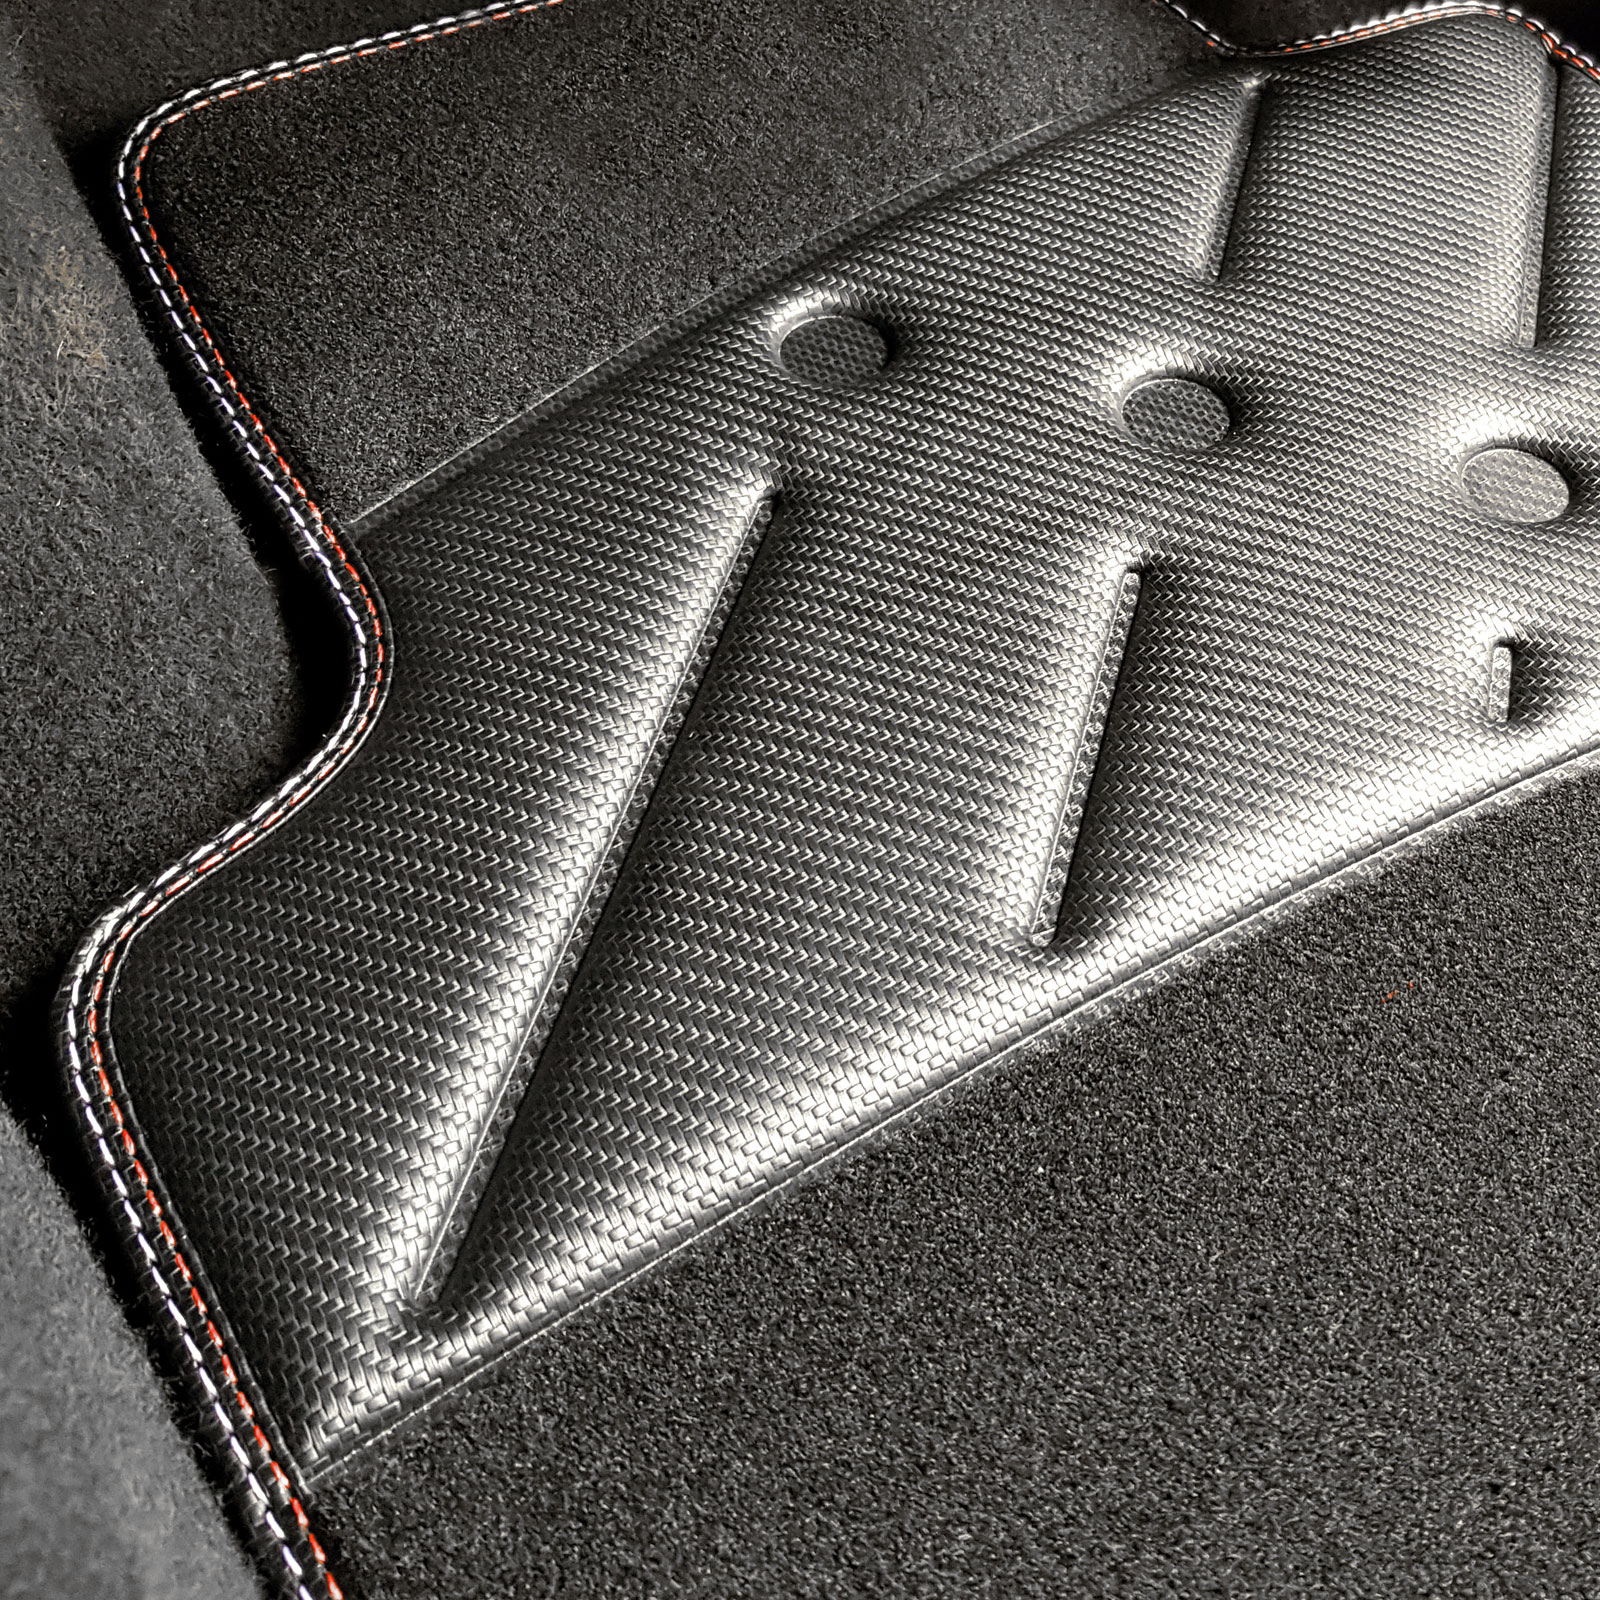 Car-Mats-for-Nissan-QX-1995-2000-Black-Grey-Carbon-Mats